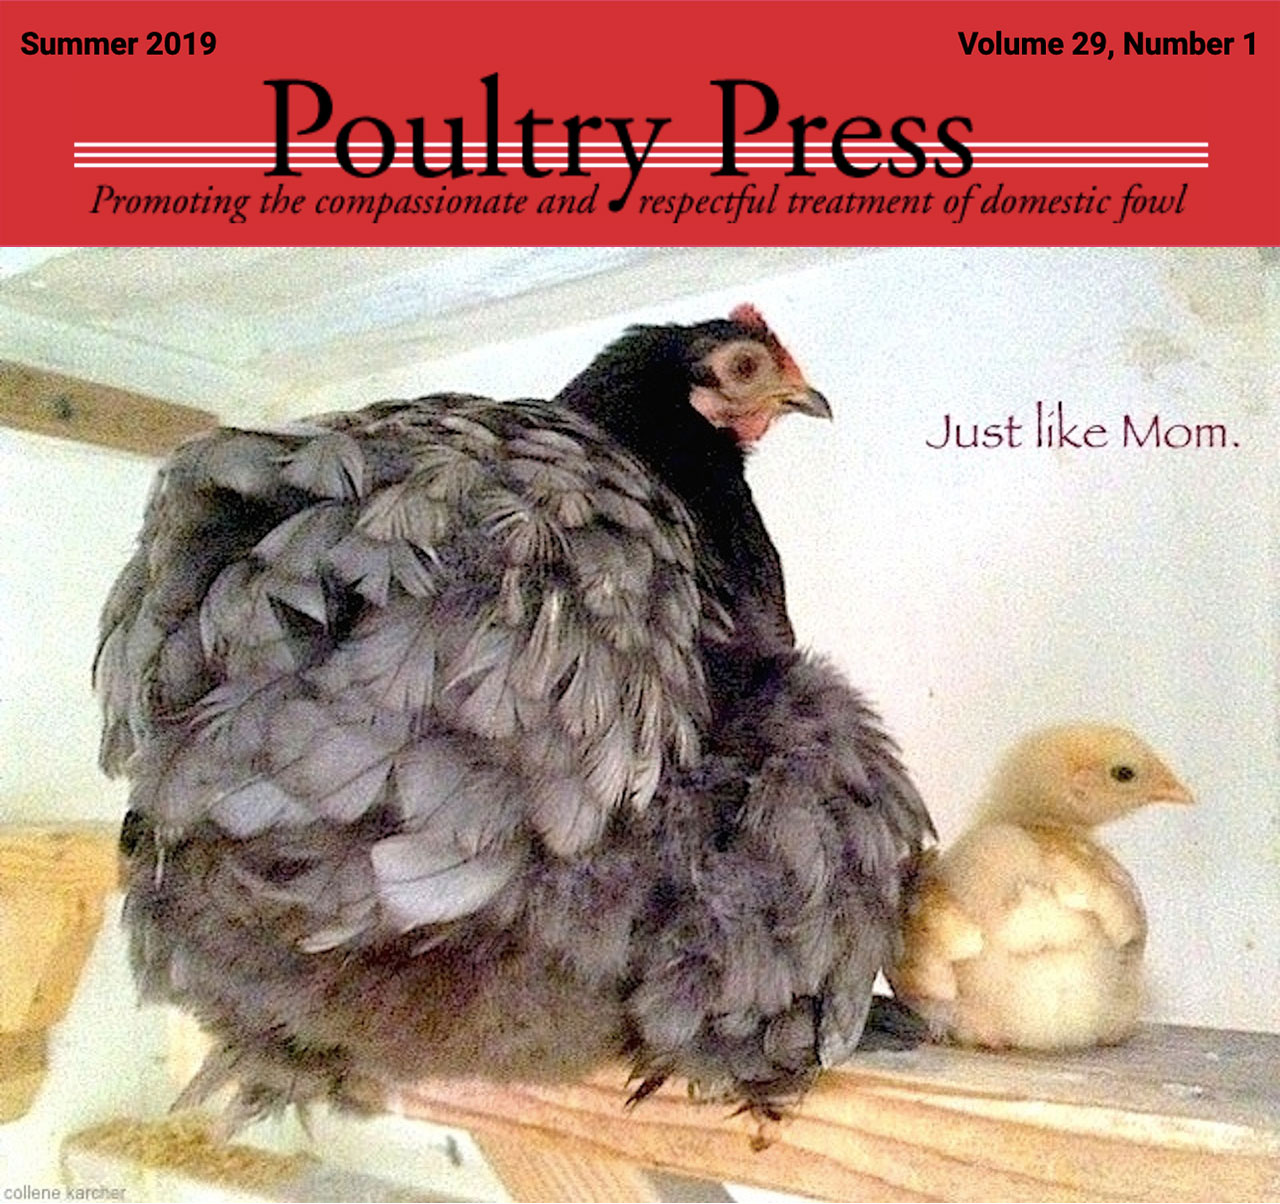 Summer 2019 Poultry Press